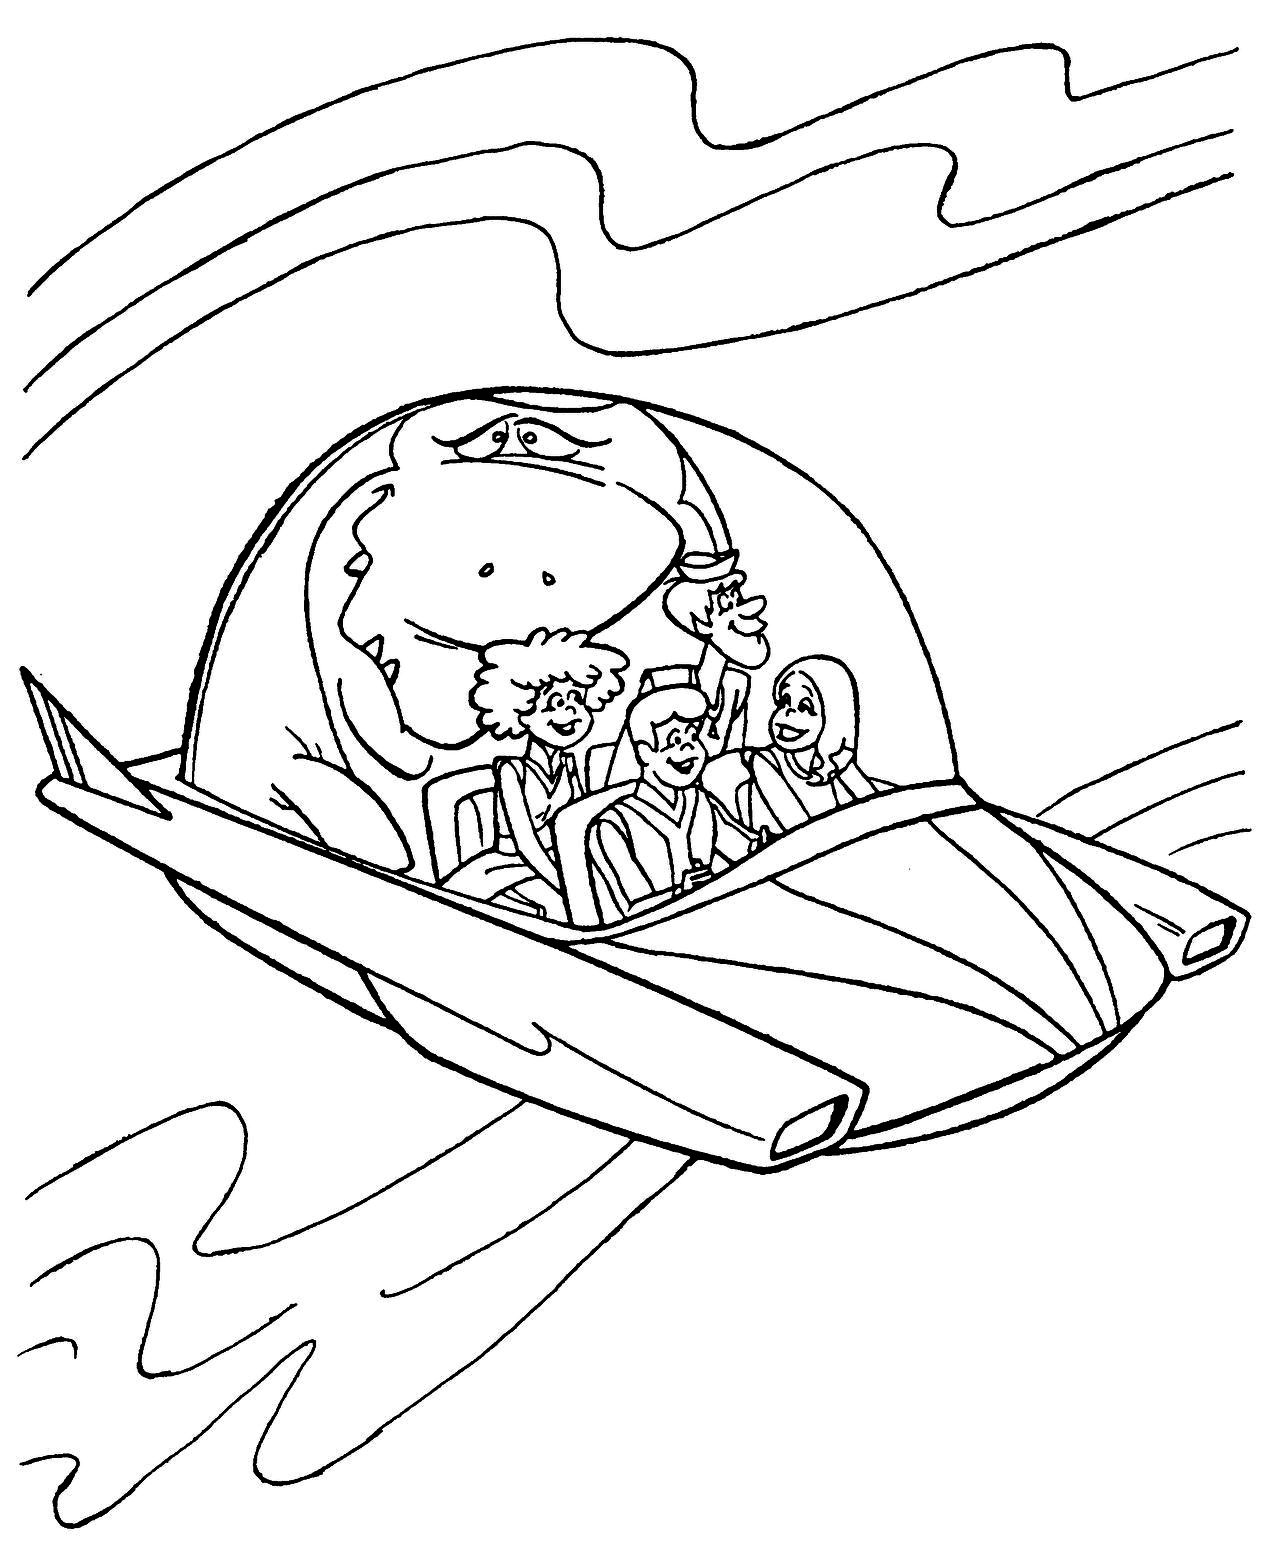 hanna barbera coloring pages - photo#44